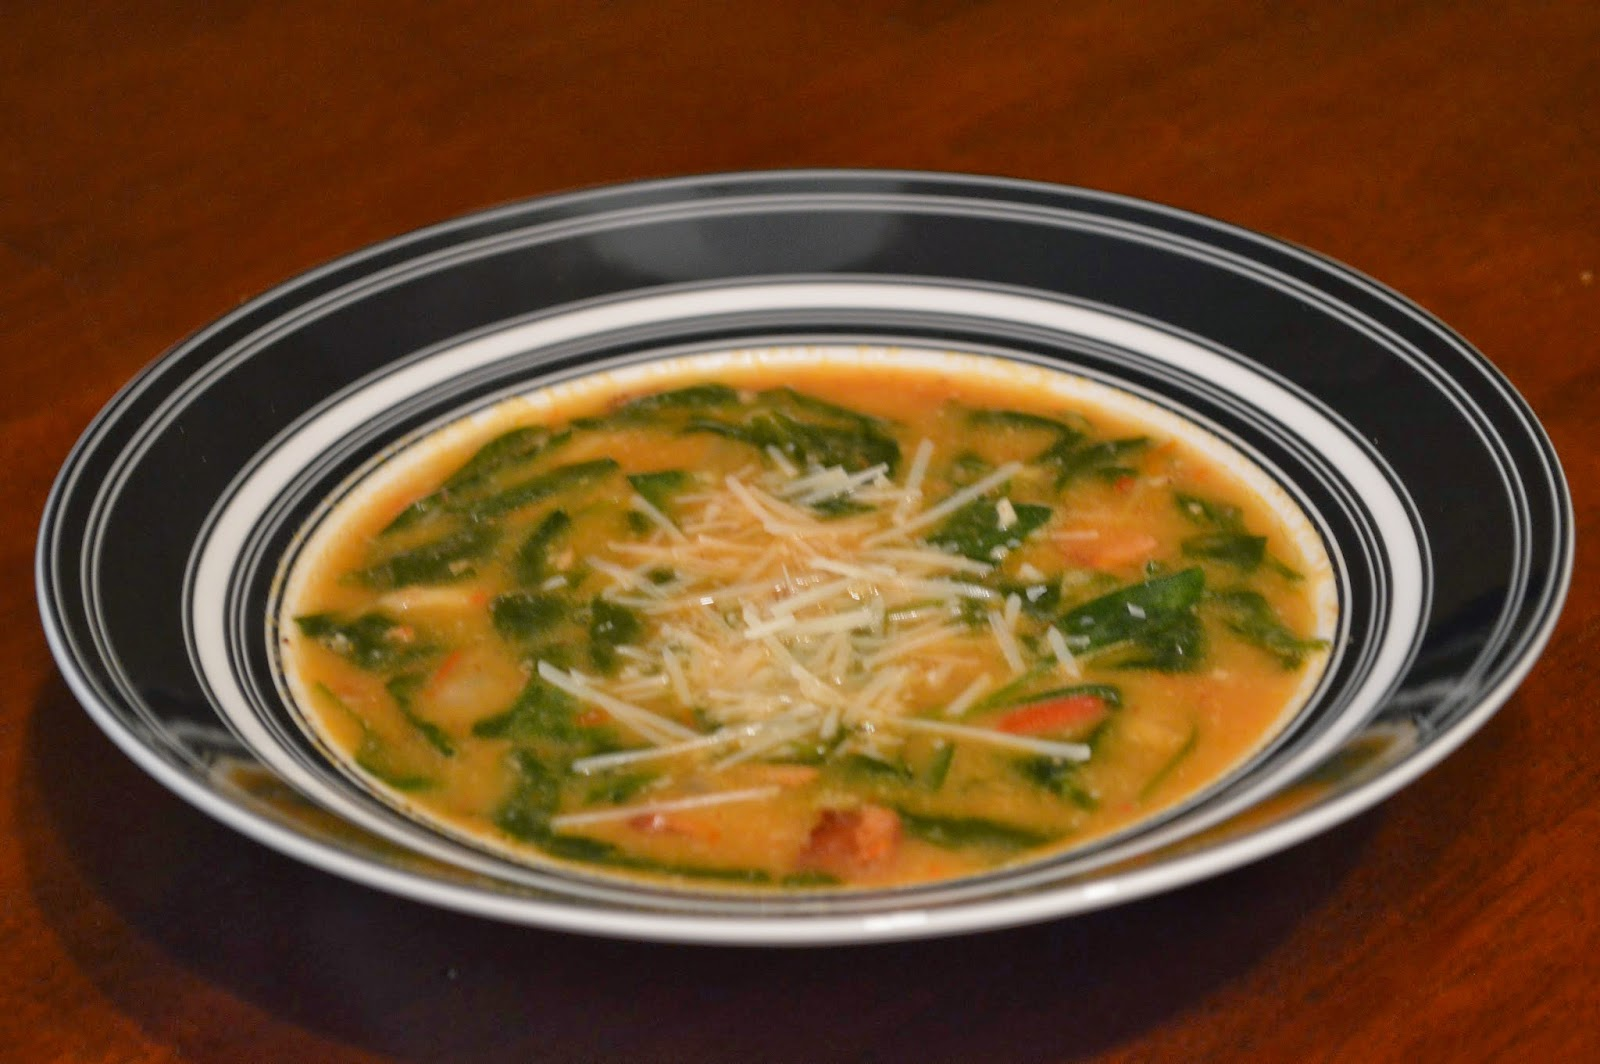 ... Time - From My Kitchen To Yours: White Bean, Spinach and Bacon Soup